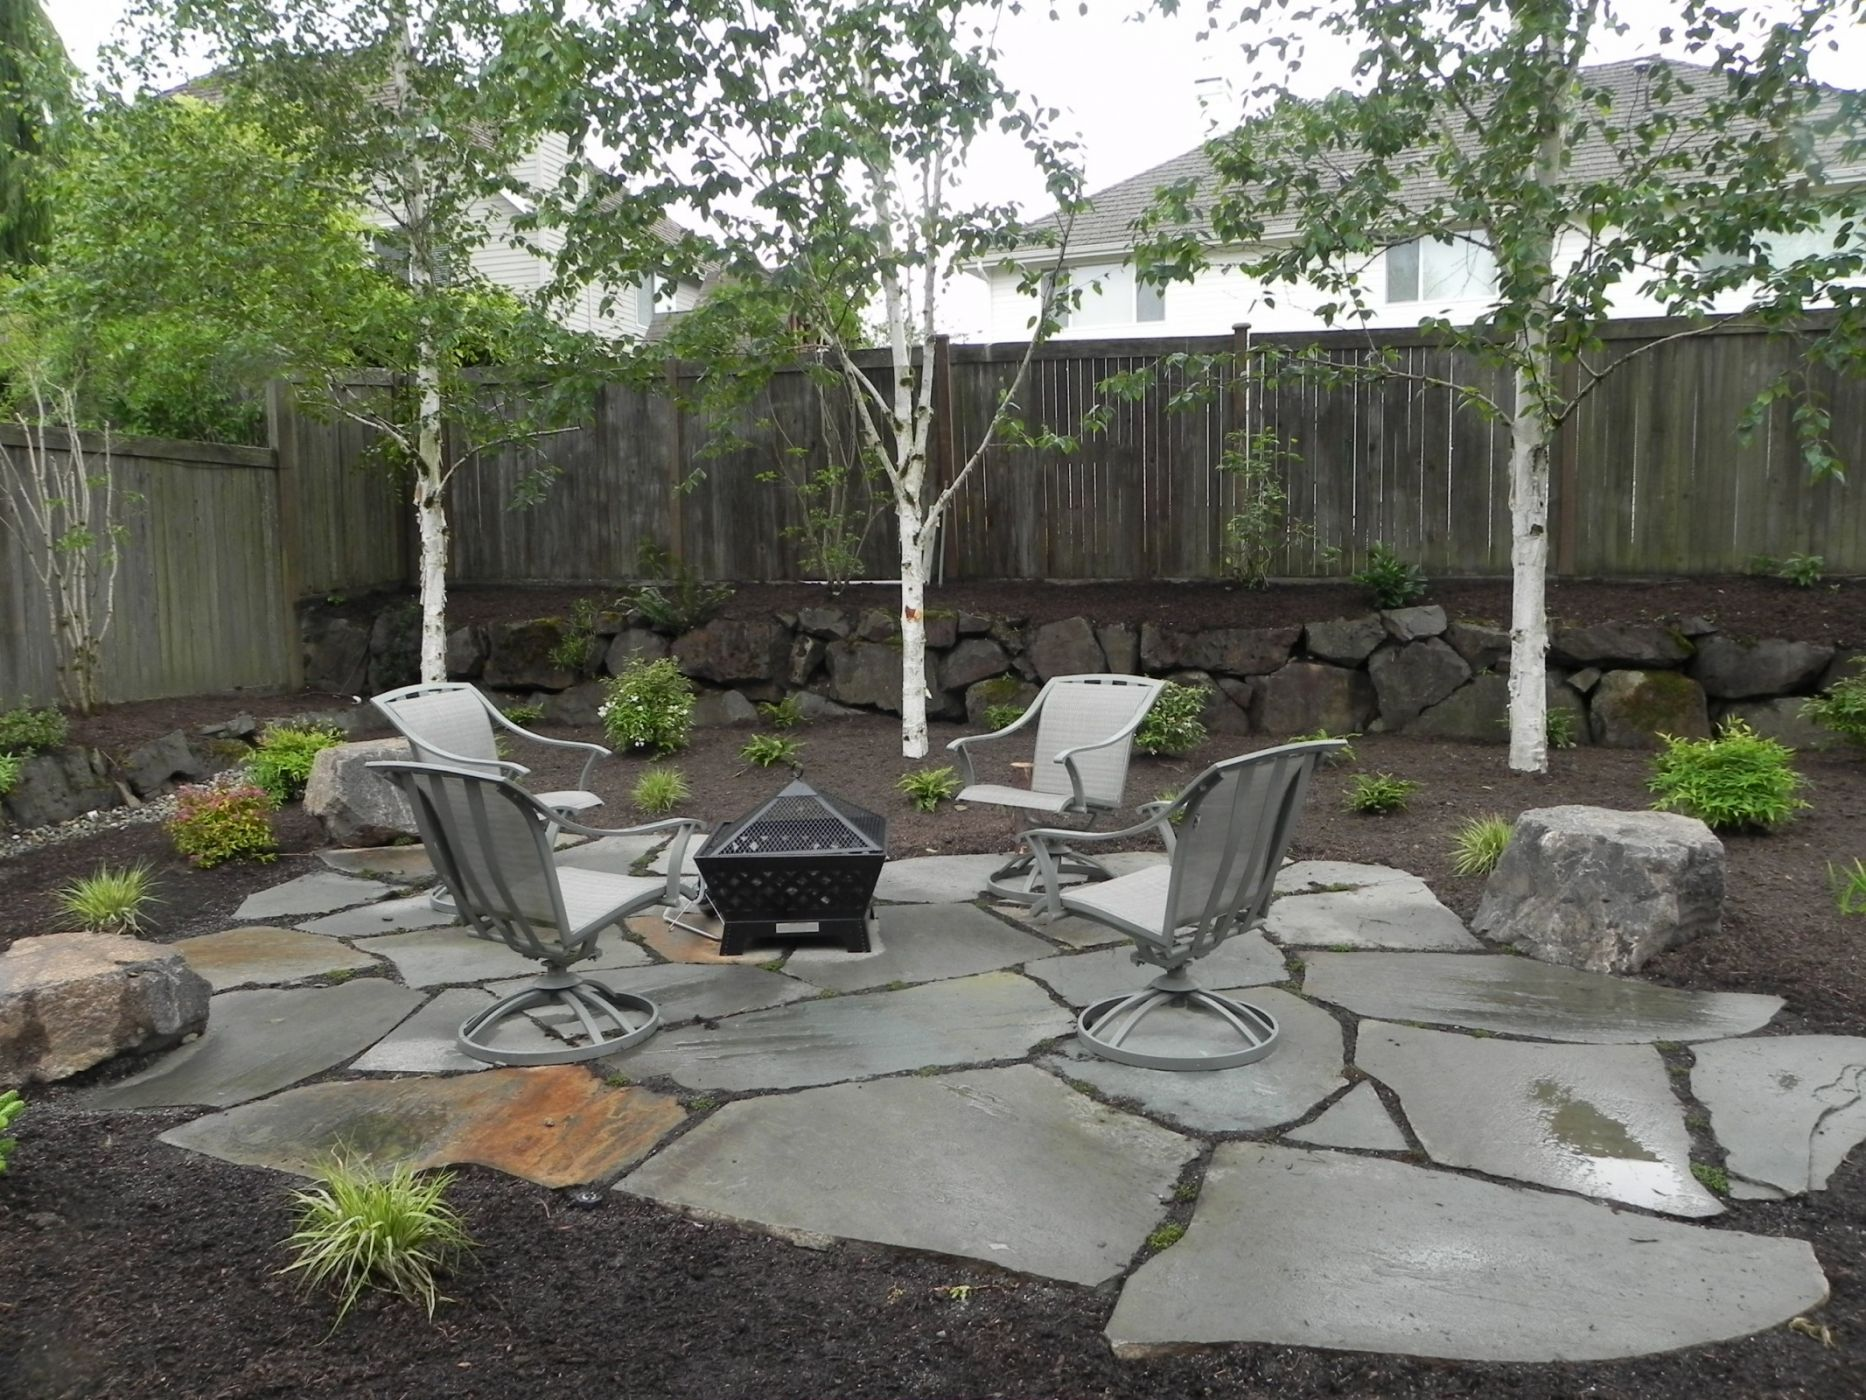 Snohomish backyard firepit | Sublime Garden Design ... on Garden Ideas With Fire Pit id=96866